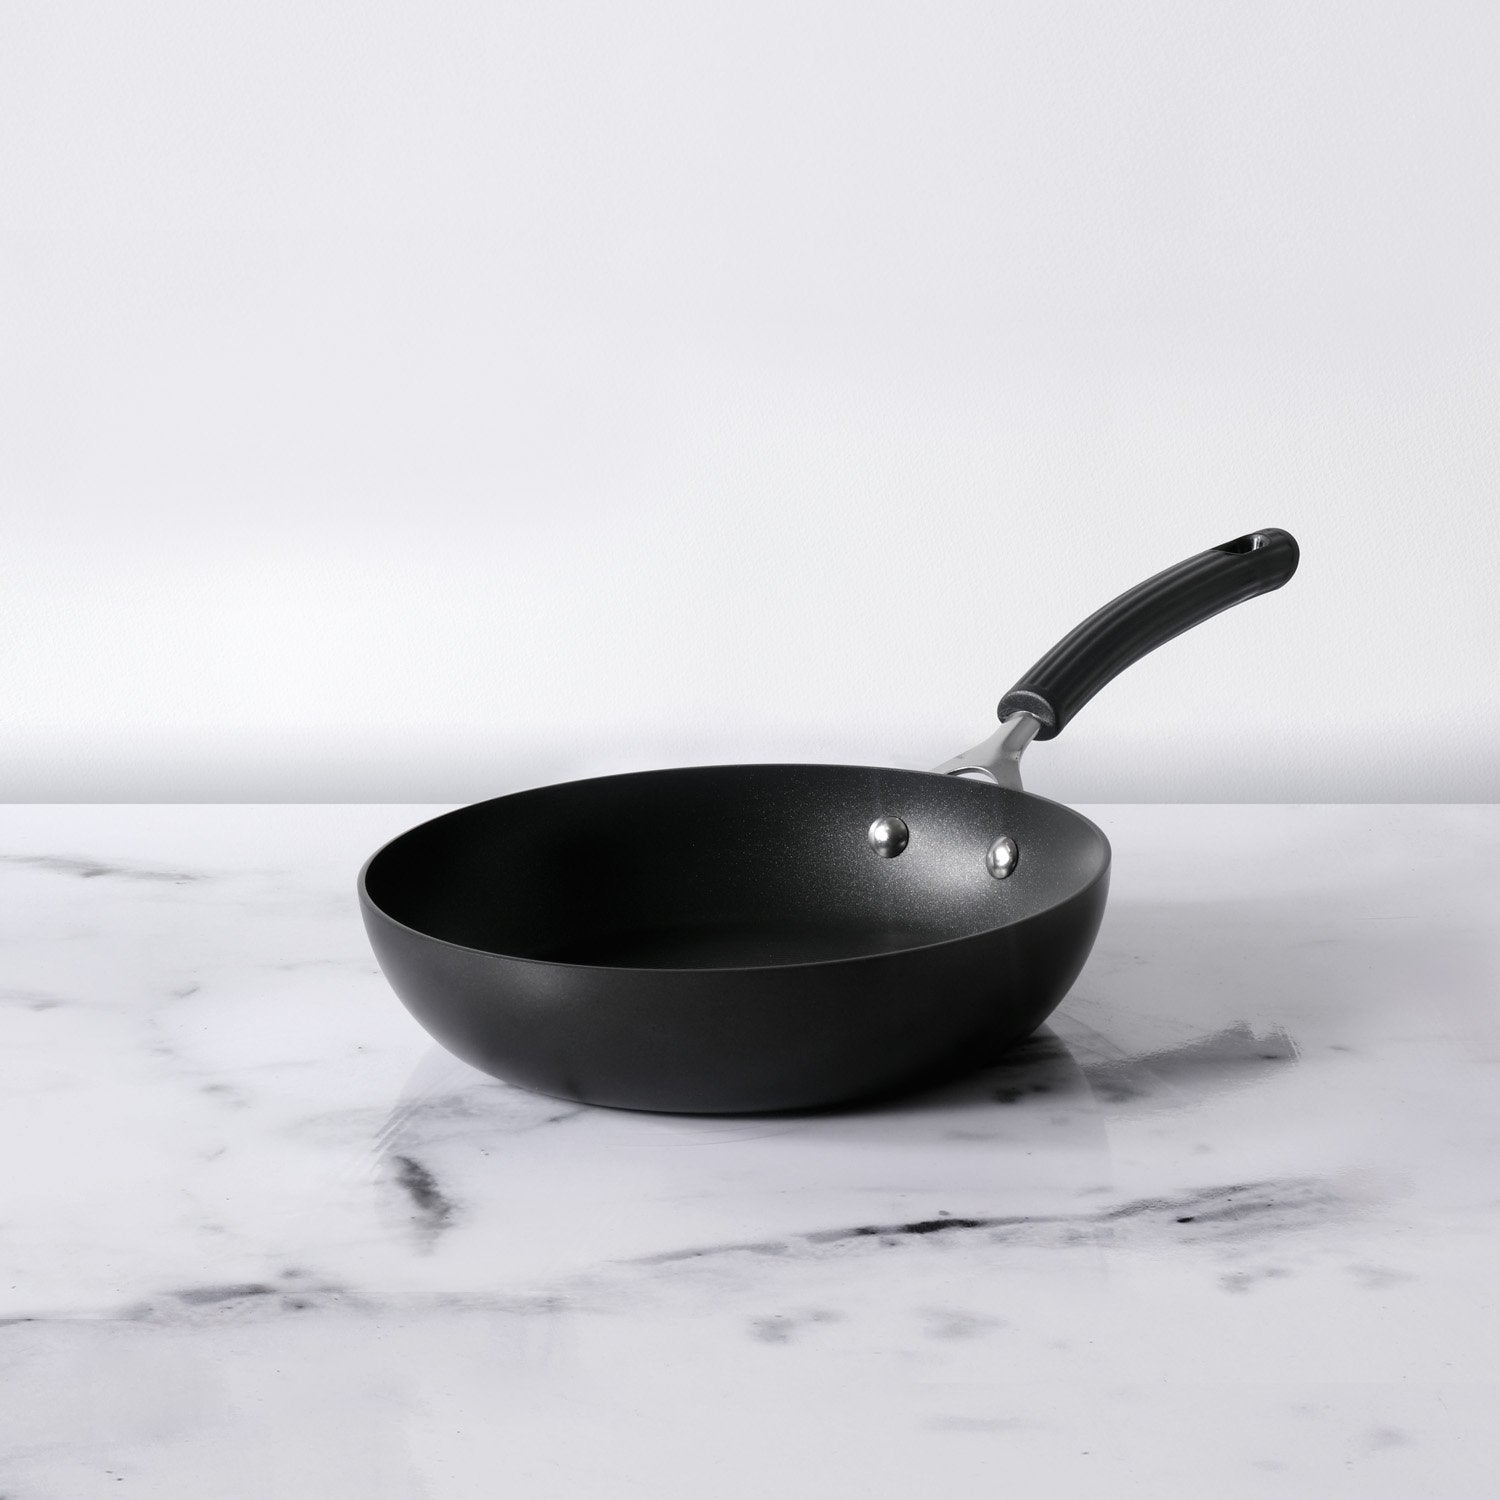 24cm Frypan/Skillet with interchangeable glass lid